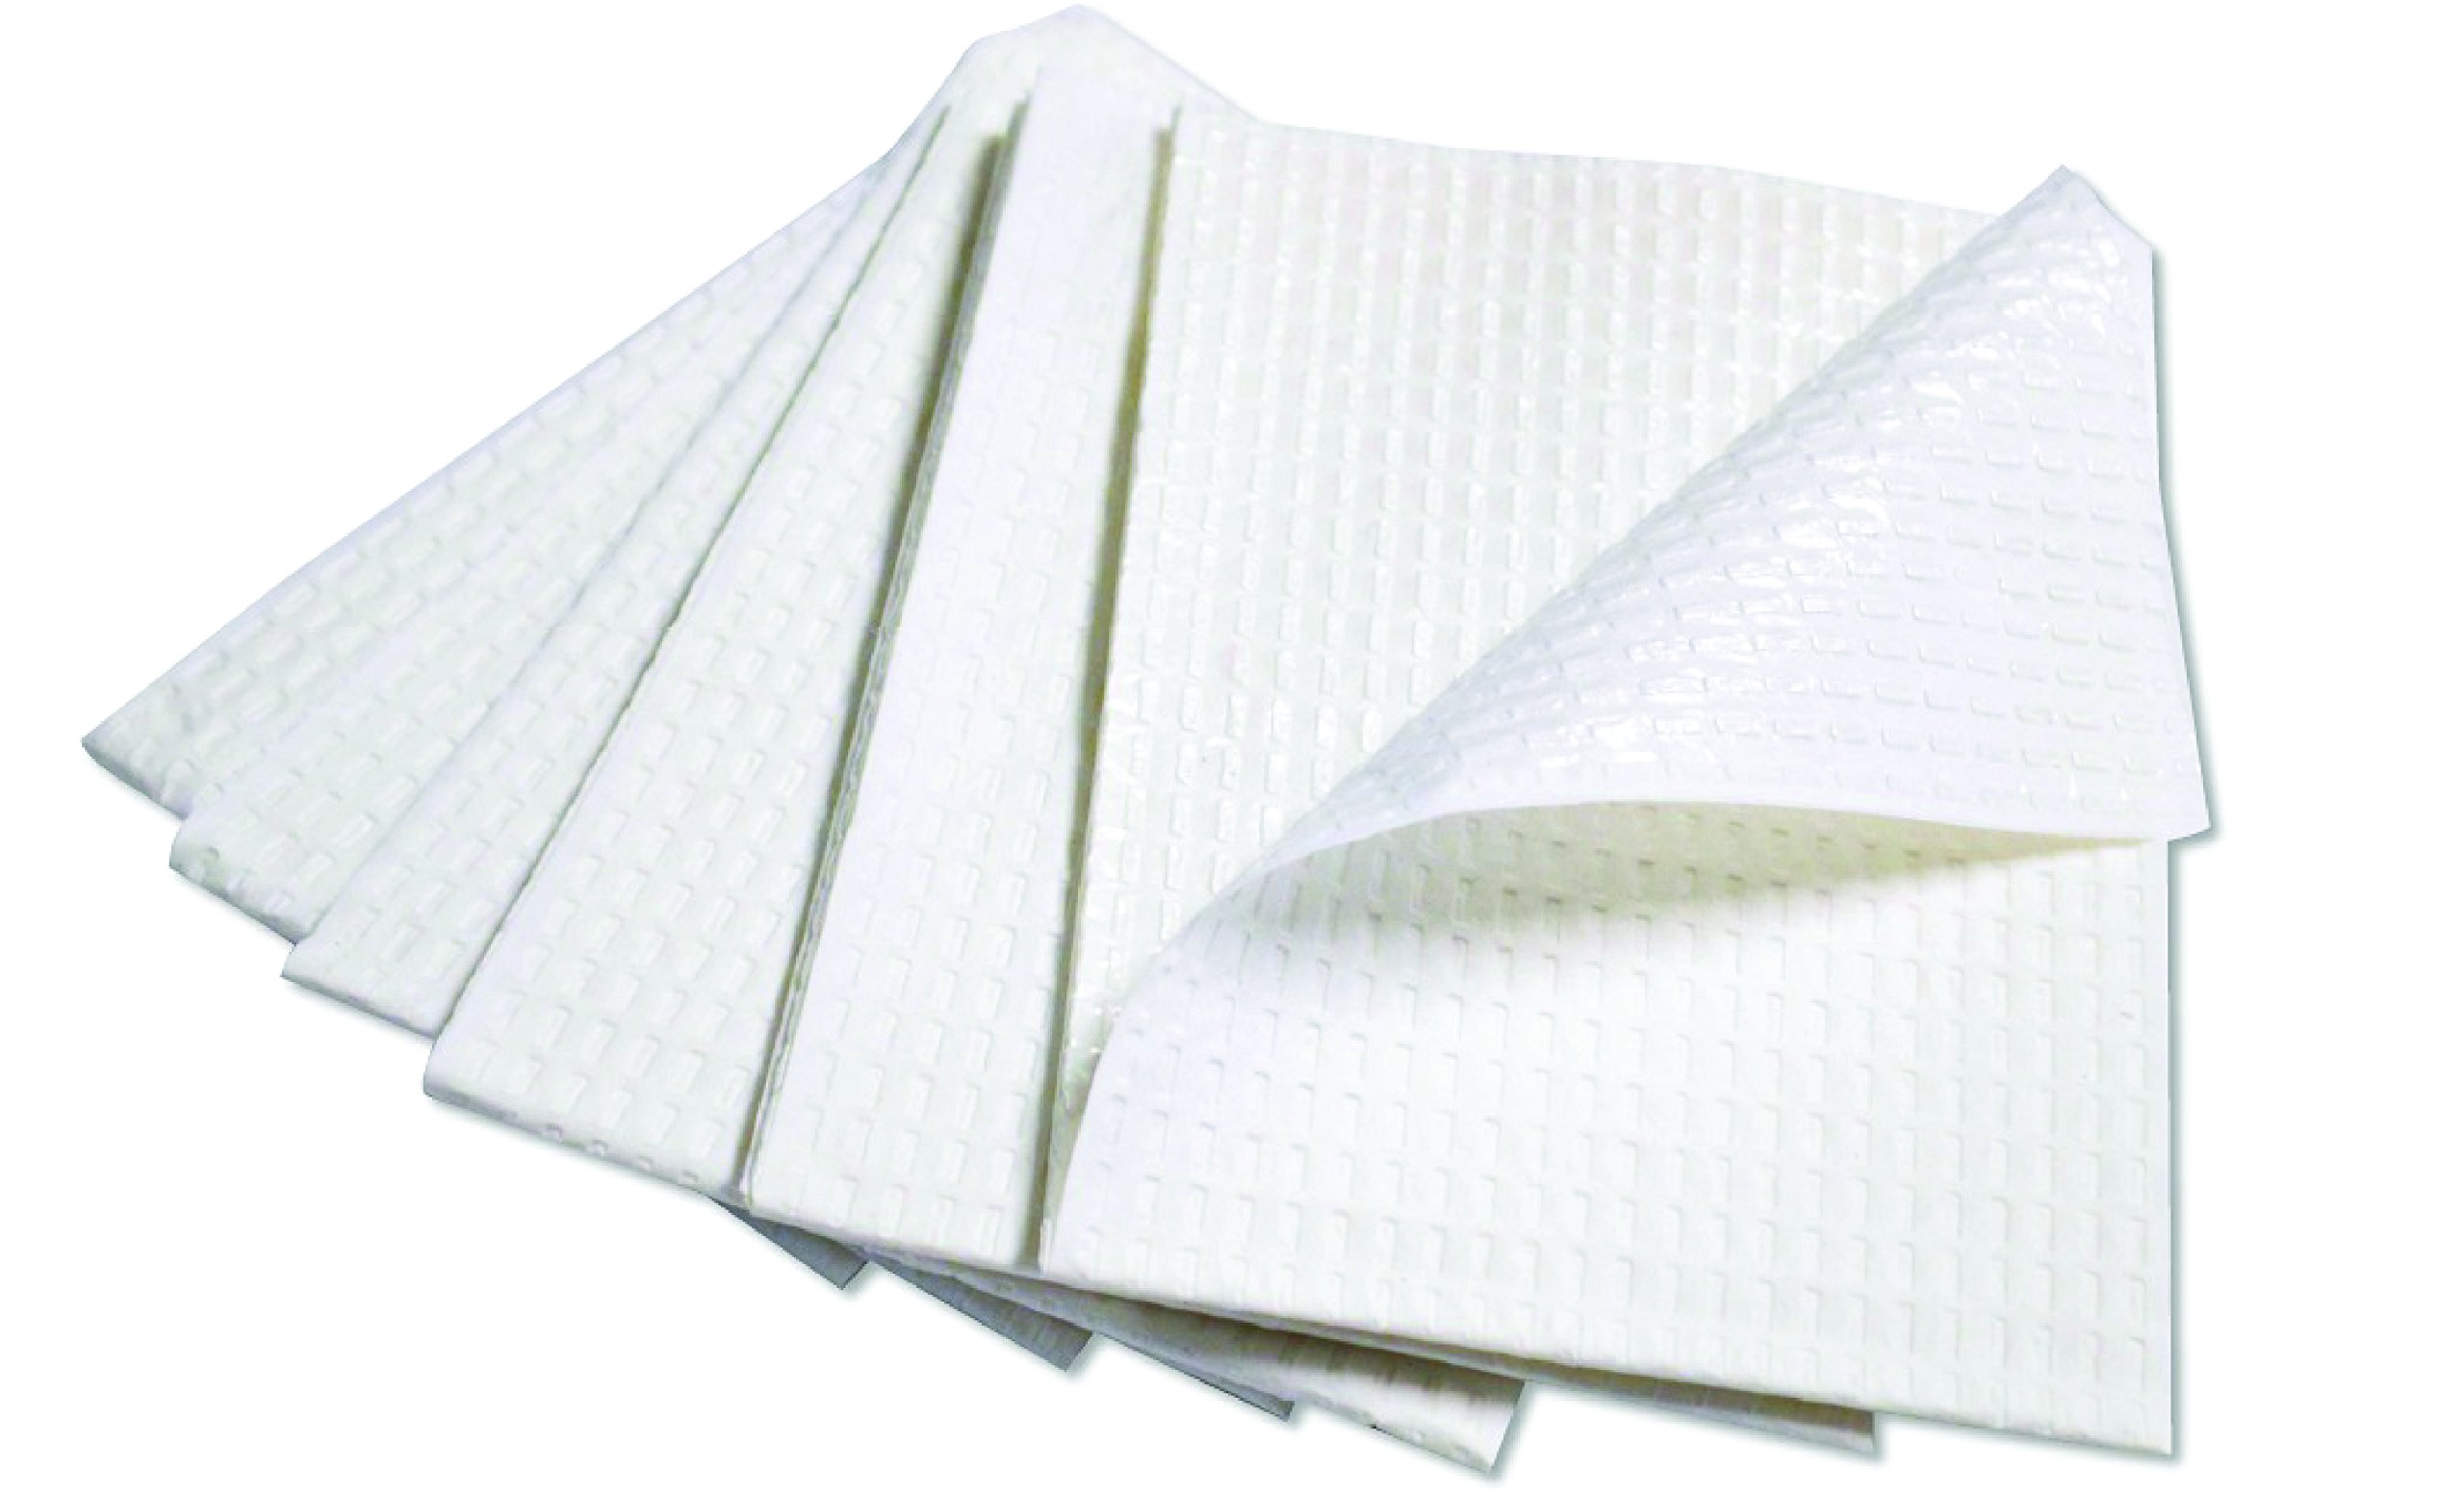 Avalon Papers 1051 Dental Bib Polyback Towel, 2-Ply Tissue + Poly, 13'' x 18'', White (Pack of 500) by Tidi